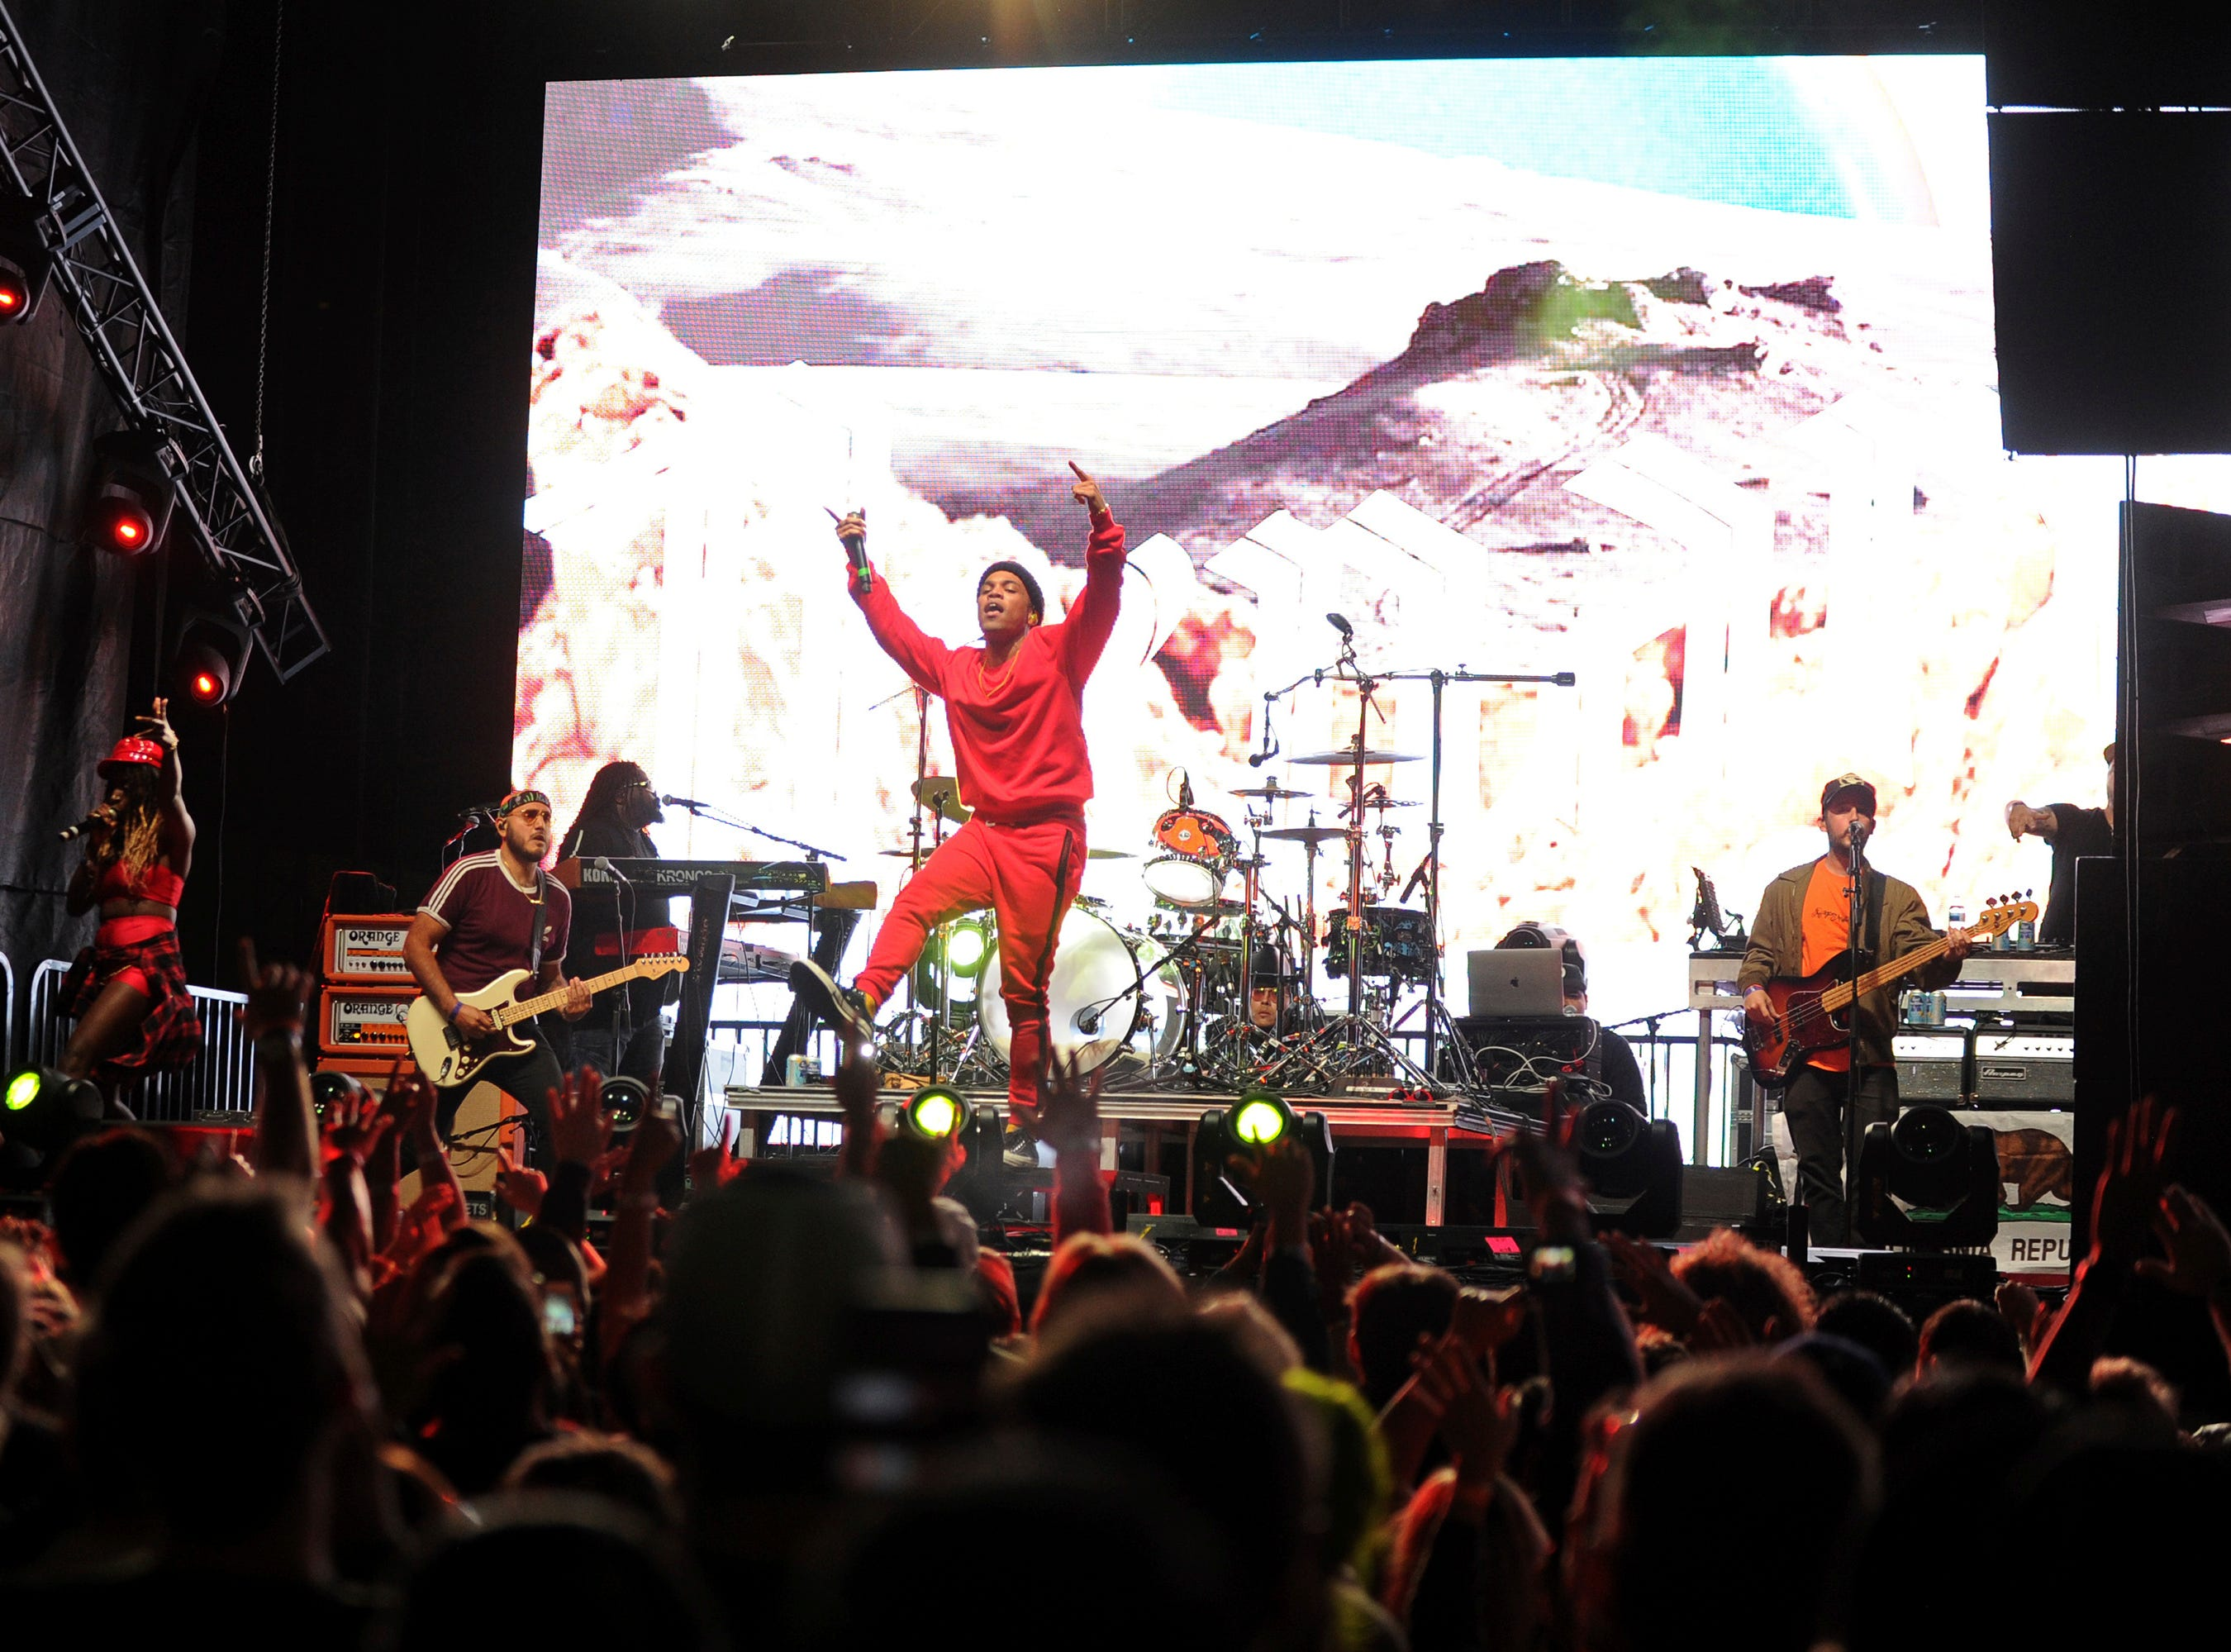 IMAGE DISTRIBUTED FOR GUITAR CENTER - Anderson .Paak performs at Guitar Center's reimagined Hollywood flagship store on Saturday, Nov. 3, 2018 in Los Angeles. Guitar Center inducted EMMY and GRAMMY®-nominated singer, drummer and percussionist Sheila 'E' Escovedo and Drum Workshop's Don Lombardi and John Good to its historic RockWalk. (Photo by Carlos Delgado/Invision for Guitar Center, Inc./AP Images)